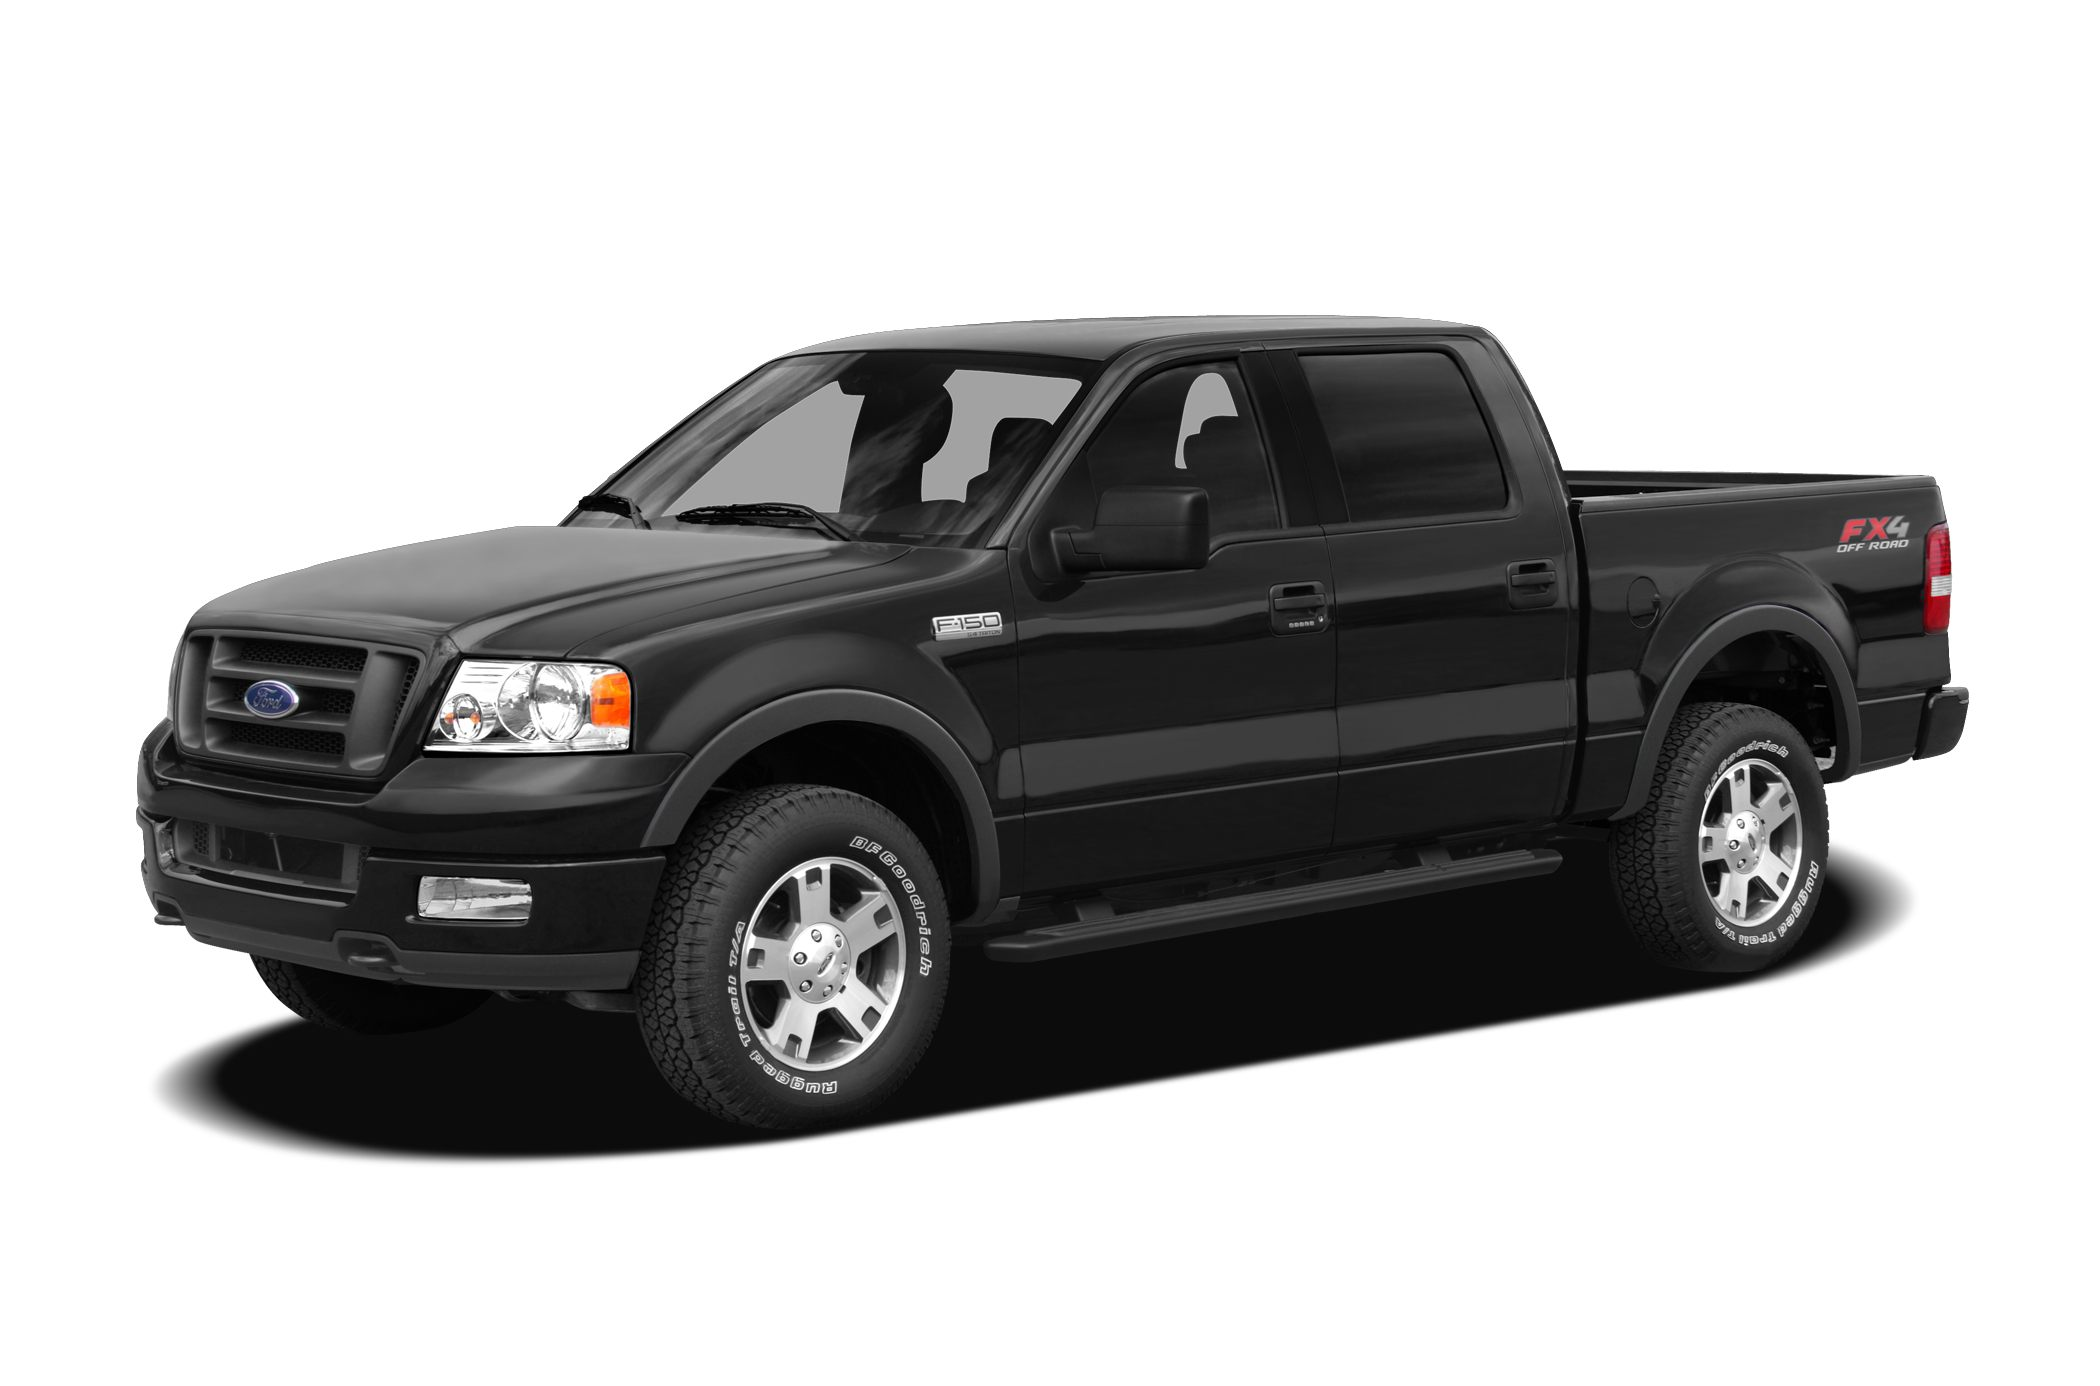 2007 Ford F 150 Supercrew Fx4 4x4 Flareside 6 5 Ft Box 150 In Wb Specs And Prices